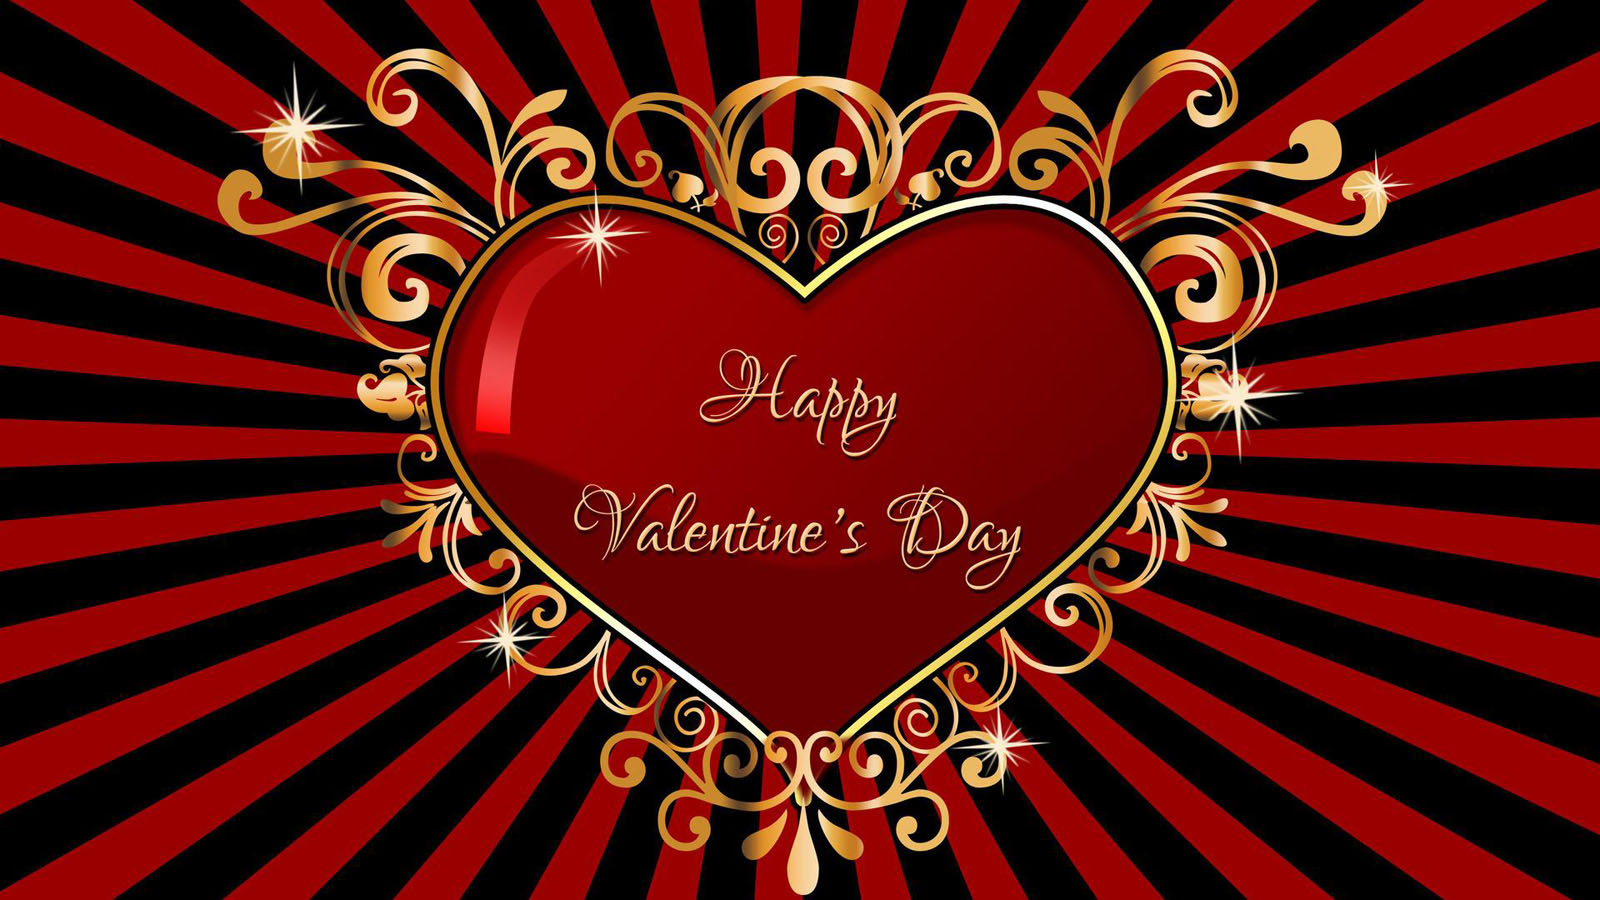 Happy Valentines Day Wallpapers HD 1600x900